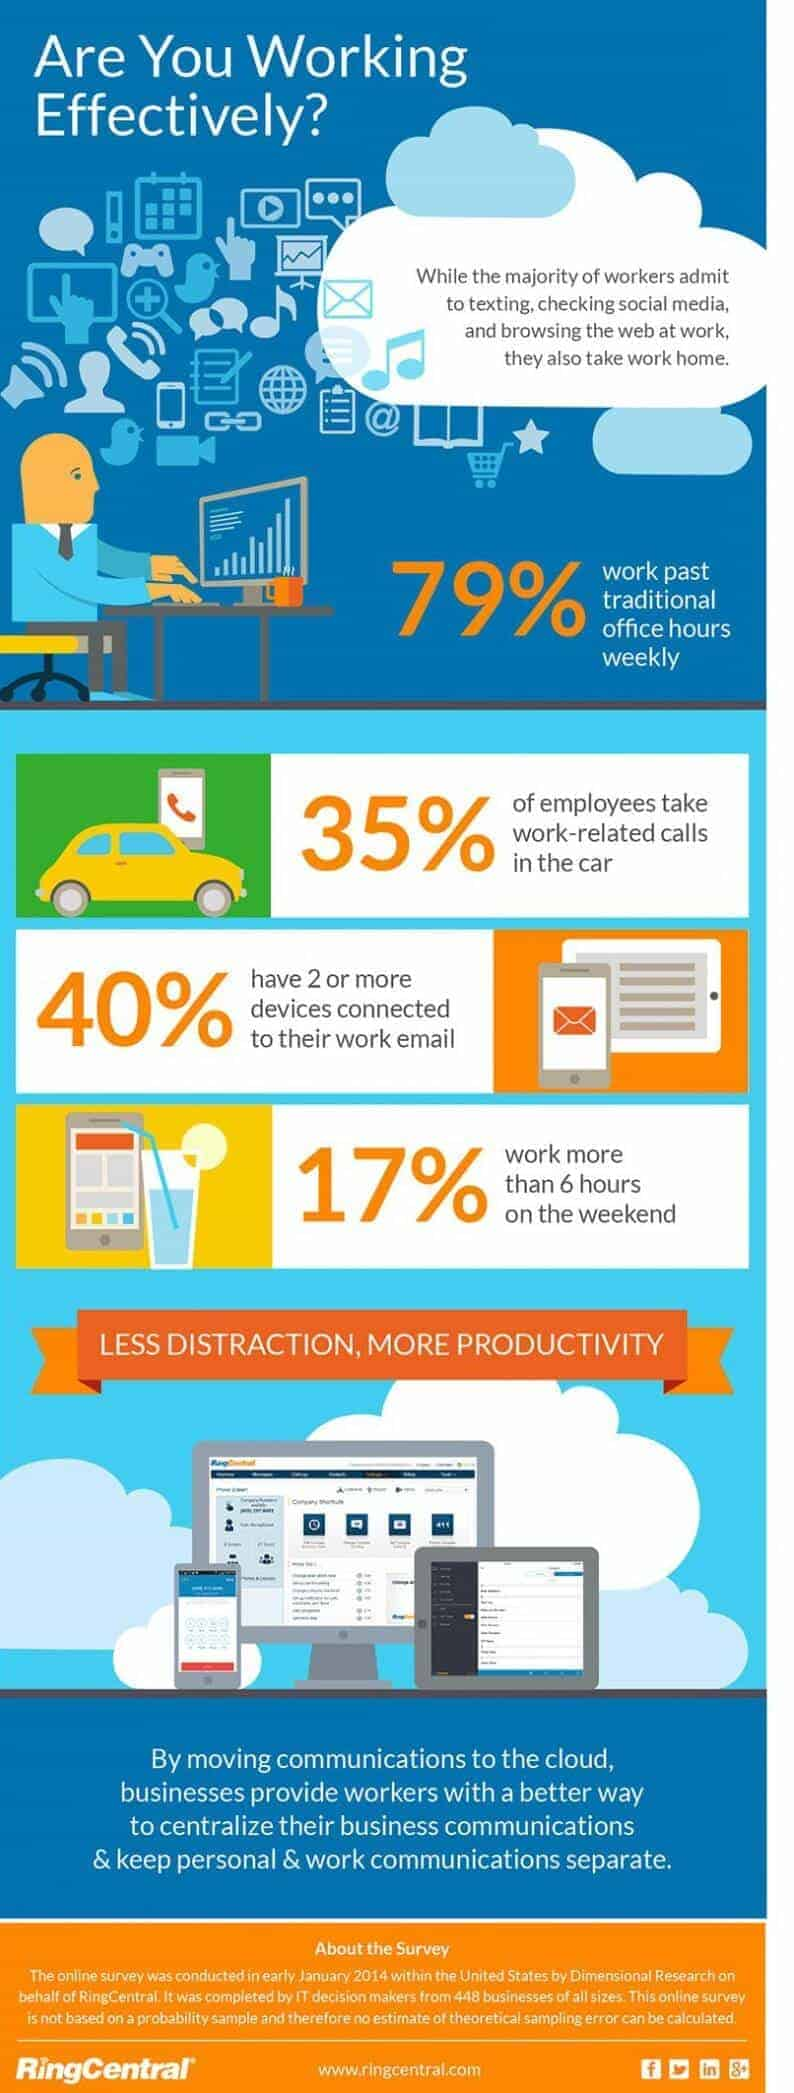 Working effectively or effectively working?